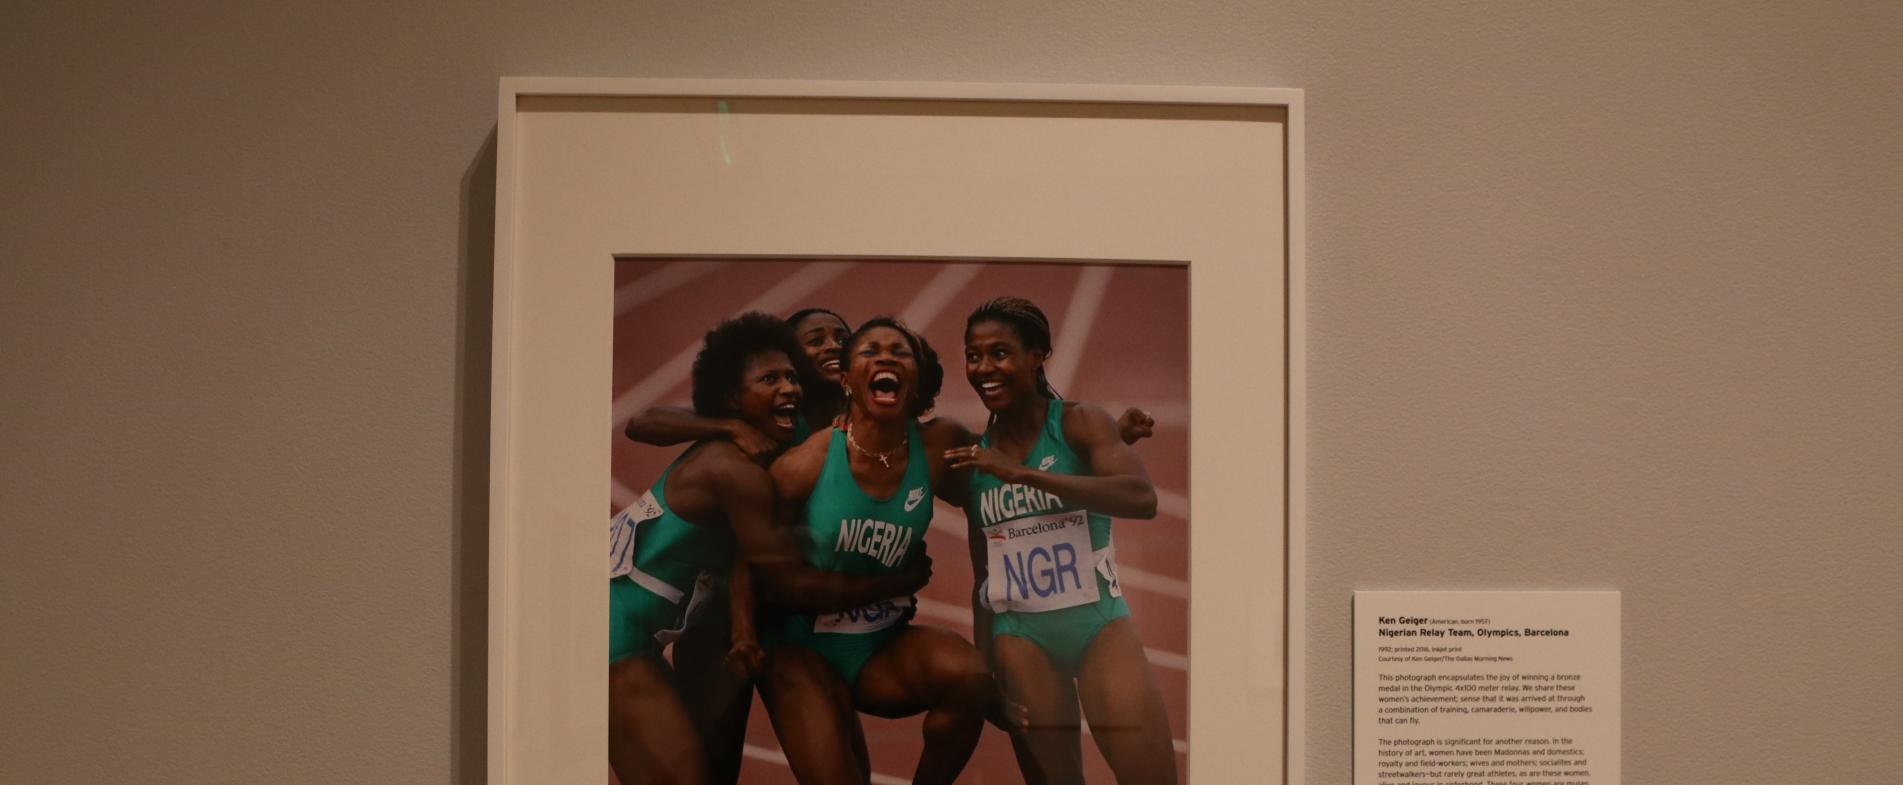 "The Nigerian 4x100 meter relay team exuding excitement after earning a bronze medal in the 1992 Olympics is just one of the images featured in ""Who Shot Sports."""